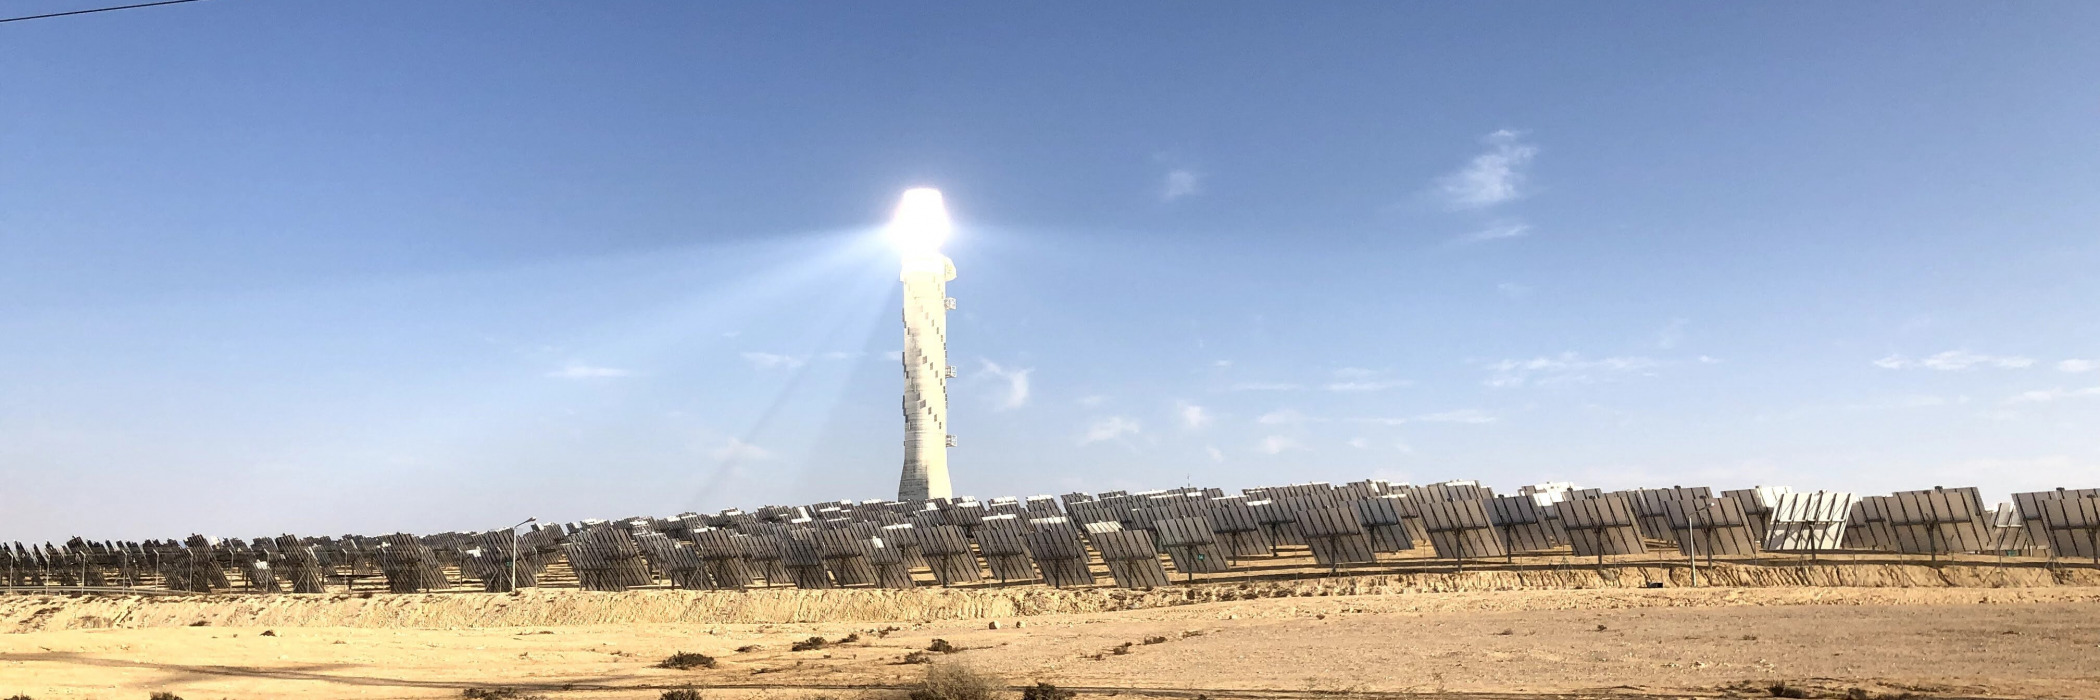 Ashalim Concentrated Solar Power plant in the Negev desert in Israel